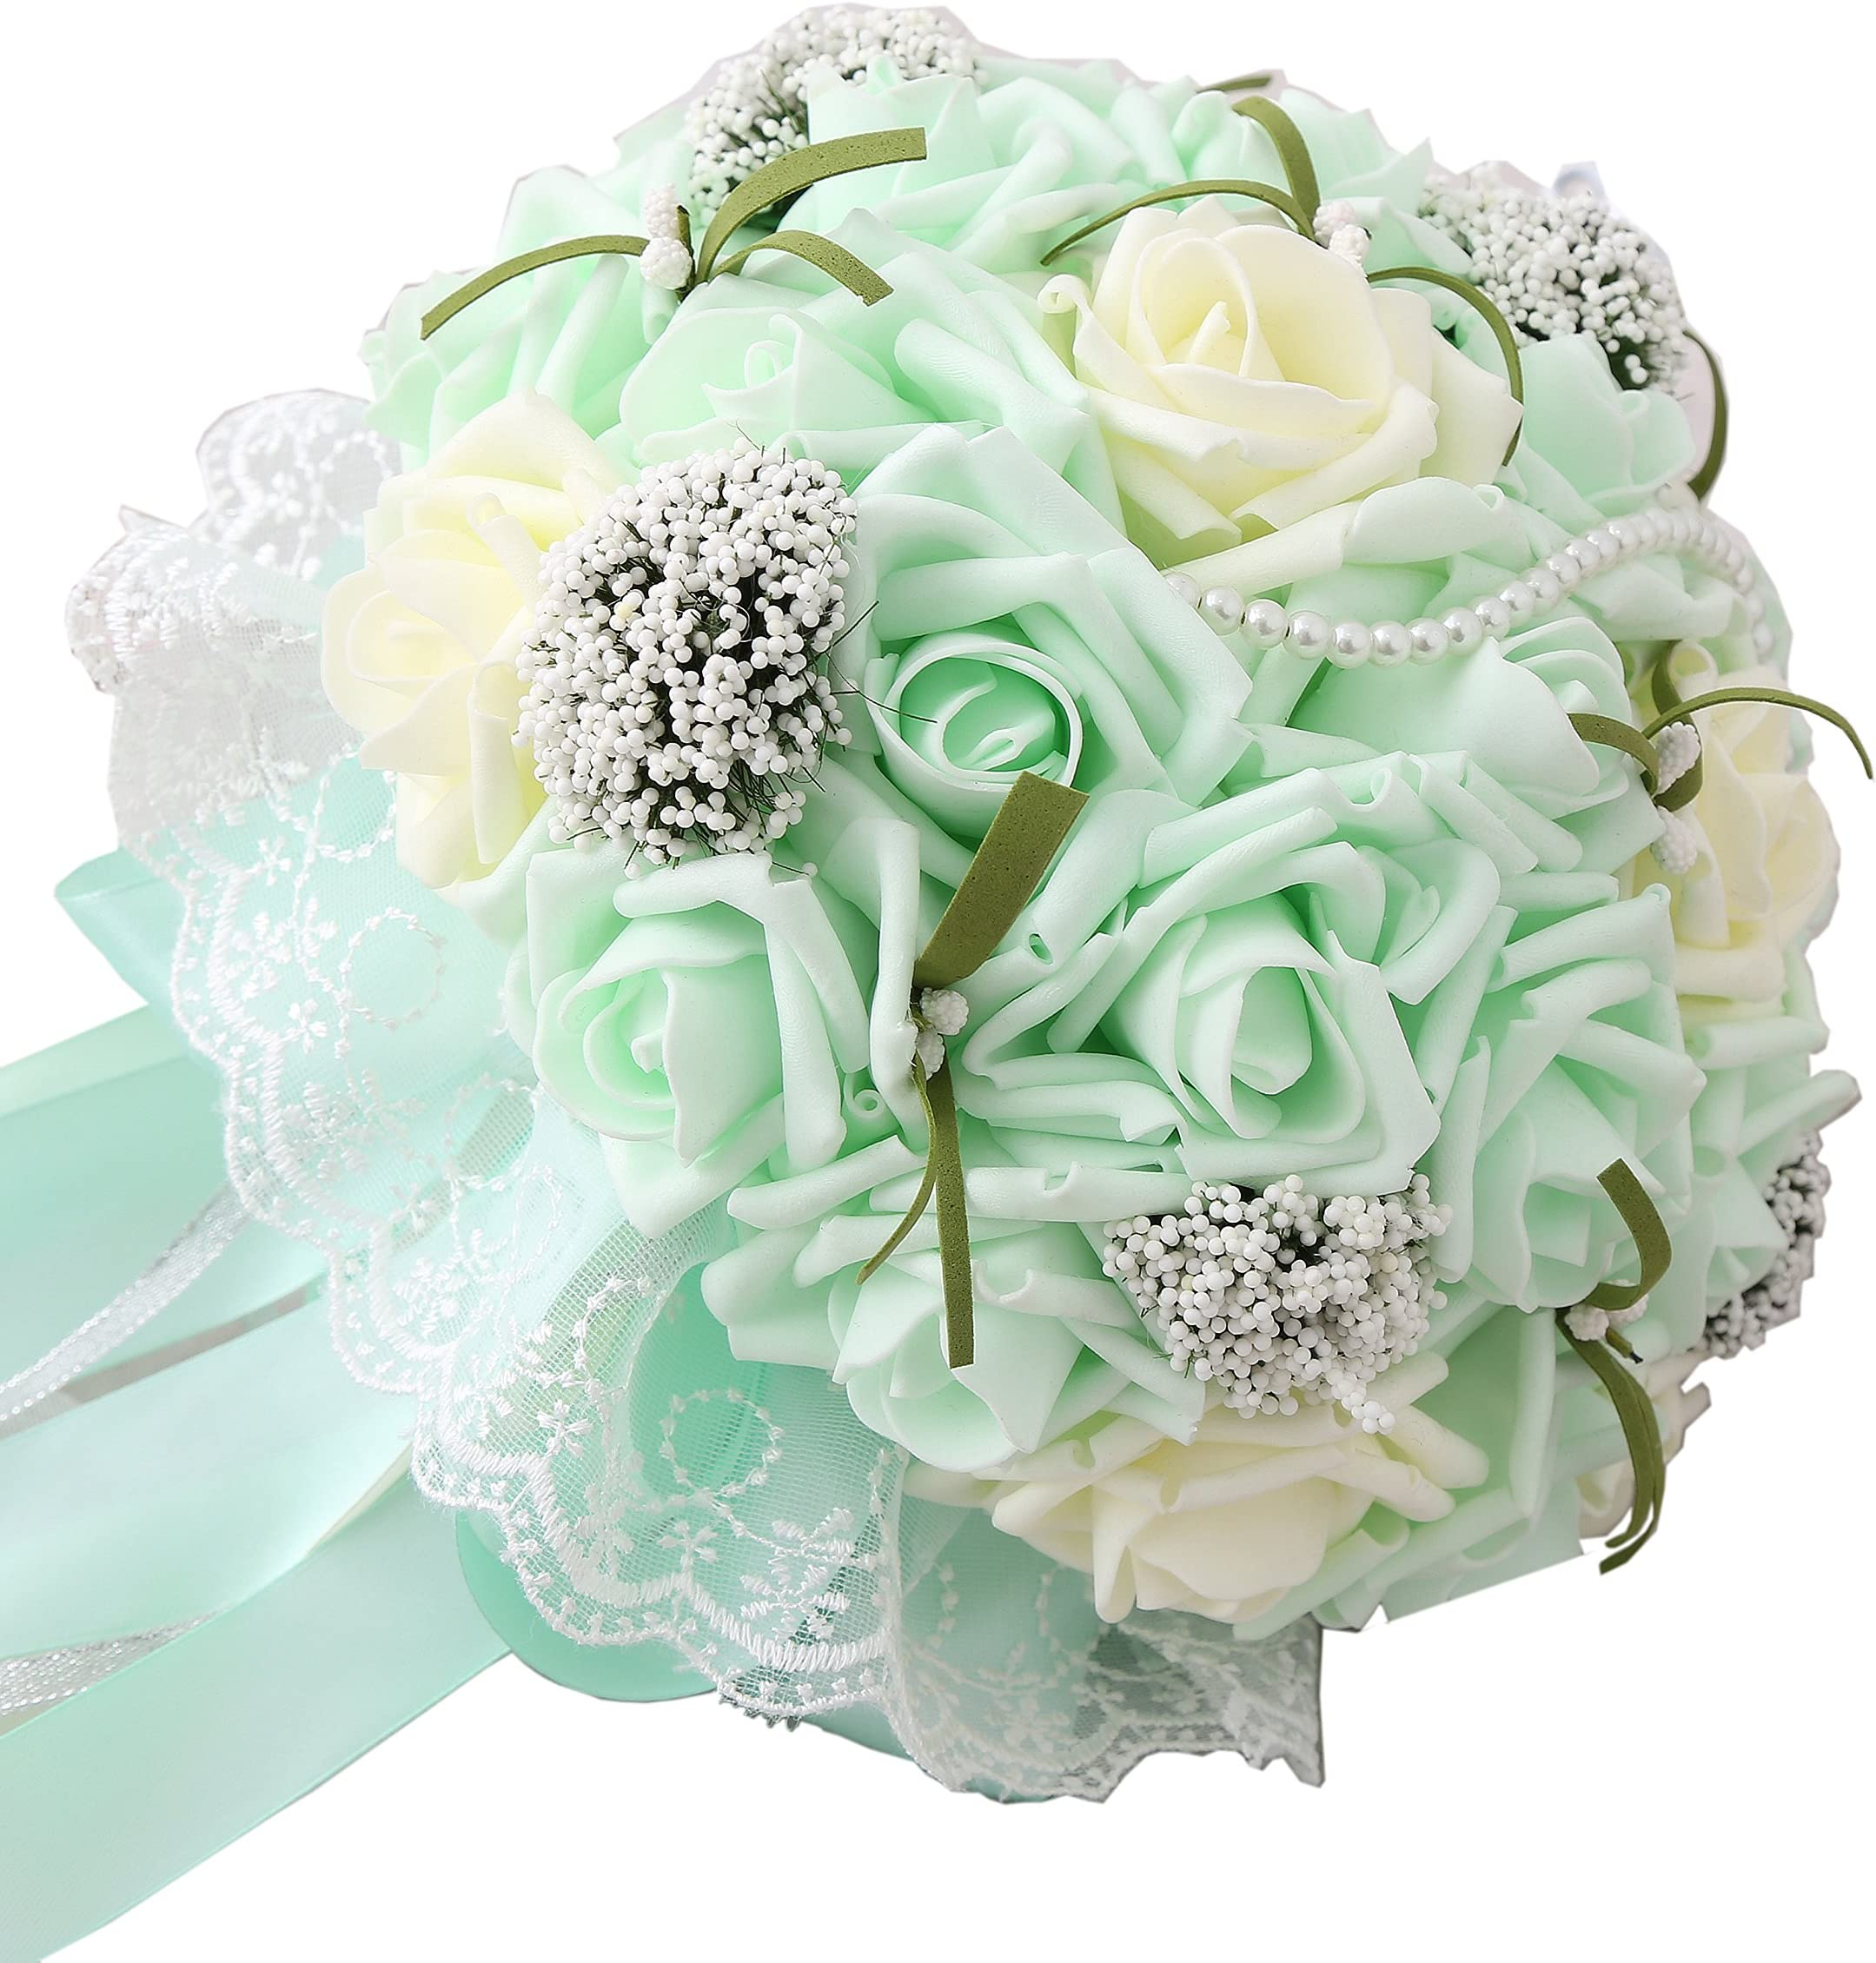 mint green invitations; hand dyed; hand ripped; wedding photography; teal Seaglass Cotton Ribbon; 100/% Vegan Cruelty Free; Bridal Bouquet